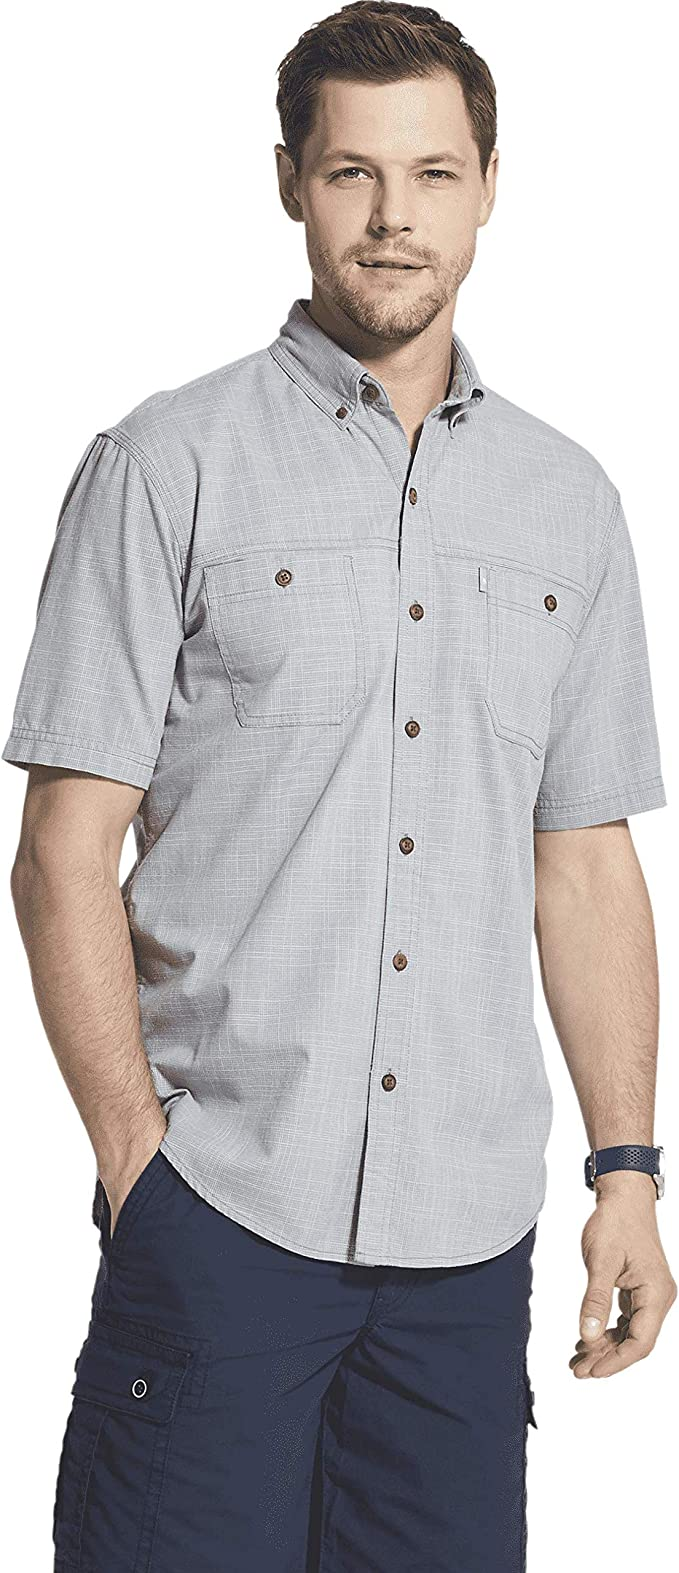 G.H Mens Big and Tall Crosshatch Short Sleeve Button Down Solid Shirt Bass /& Co